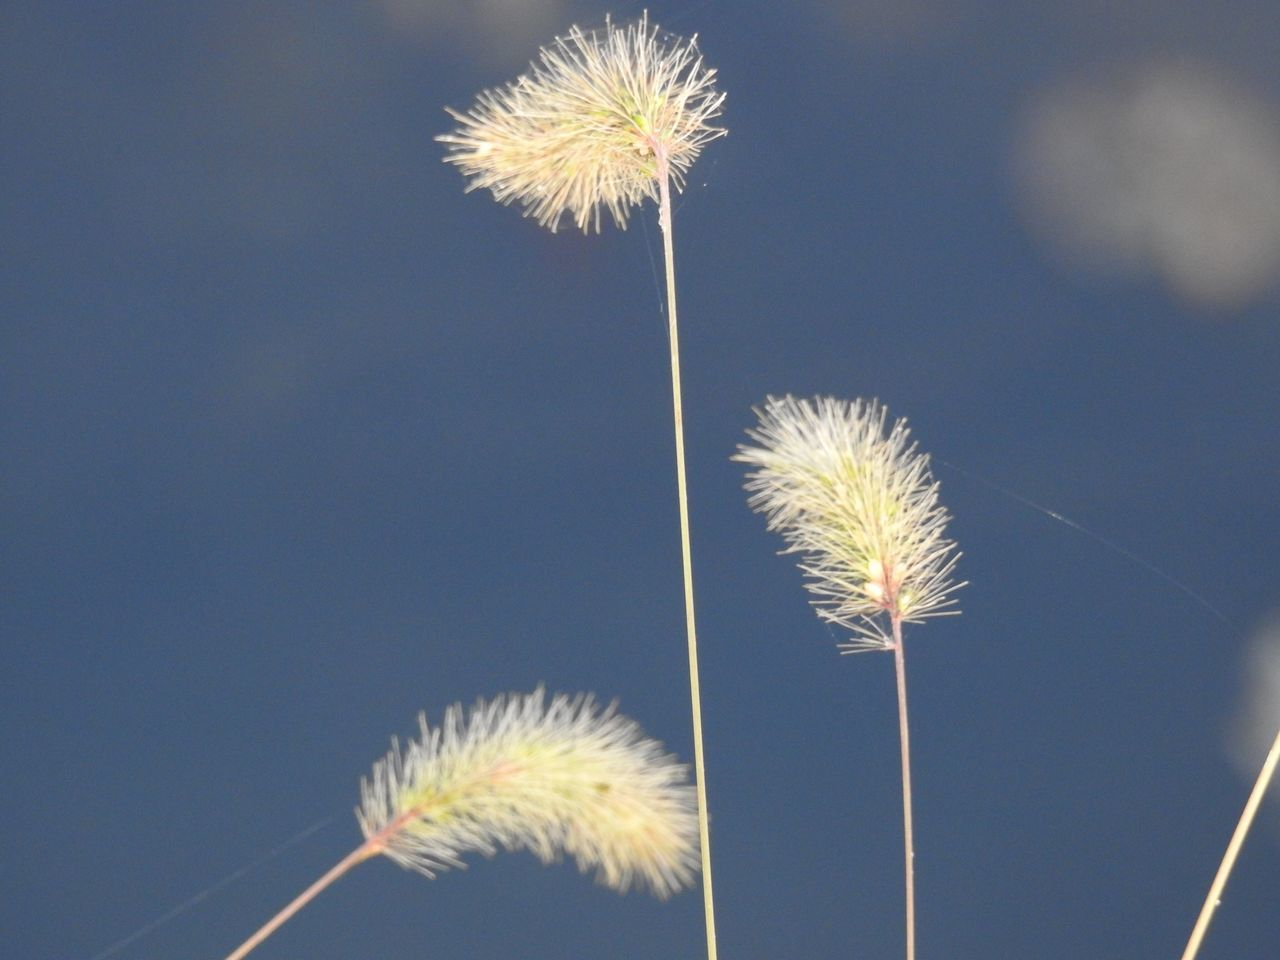 Low Angle View Of Dandelion Against Clear Sky